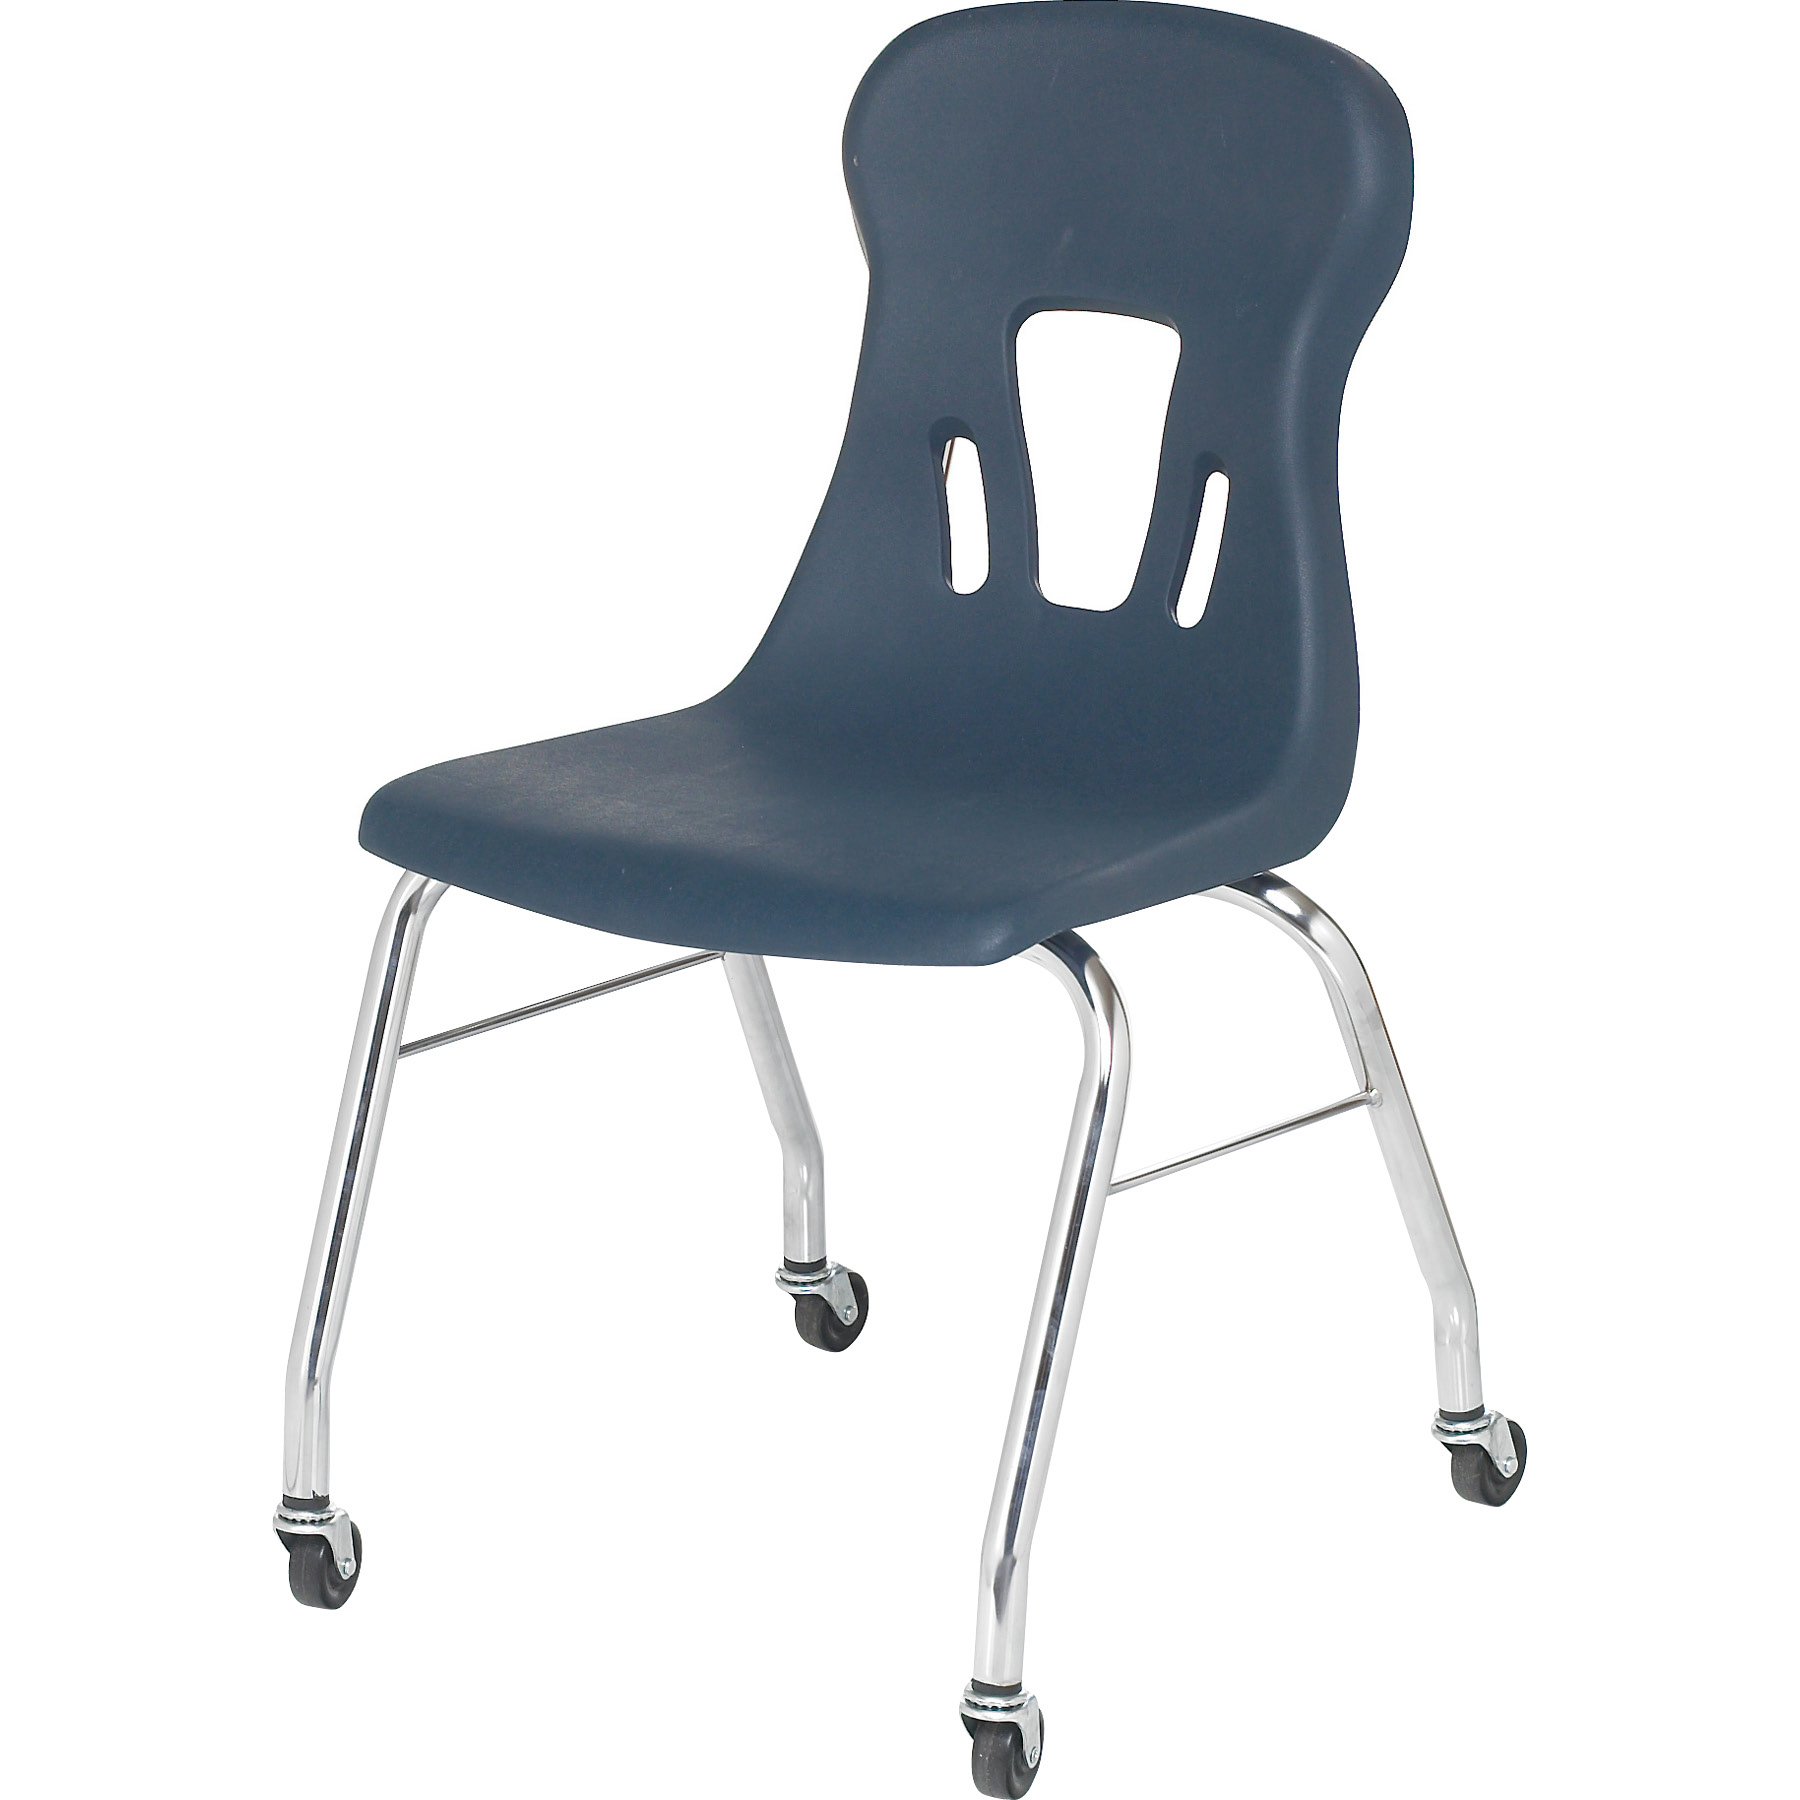 2267 Classic Comfort Chair with Casters